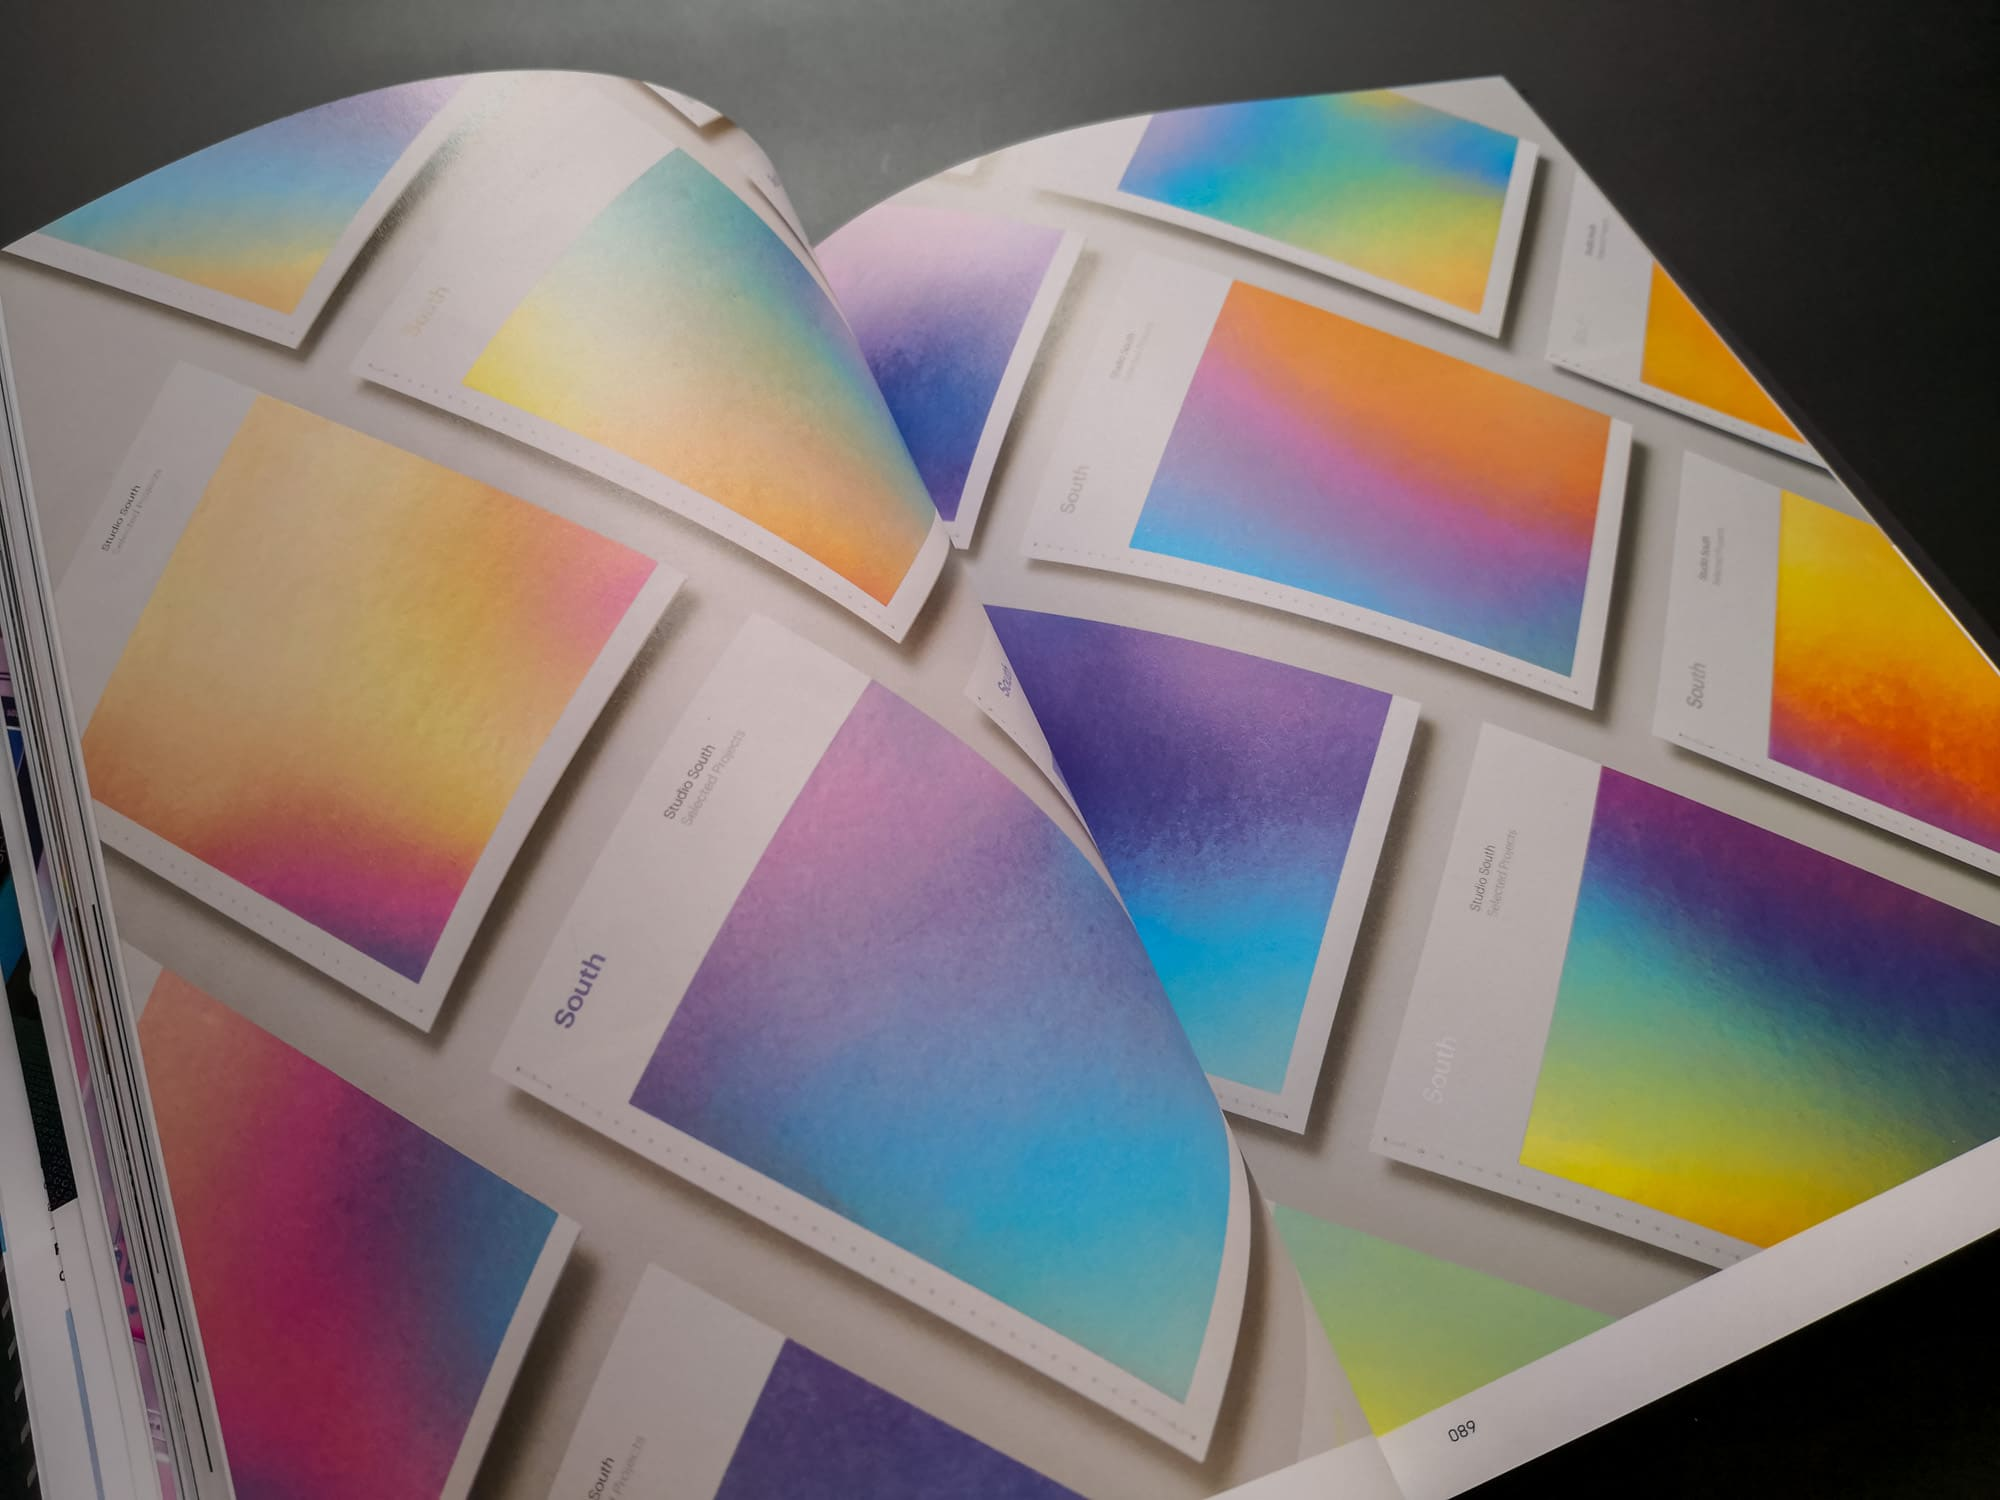 Palette 08 : Iridescent. South Business Cards